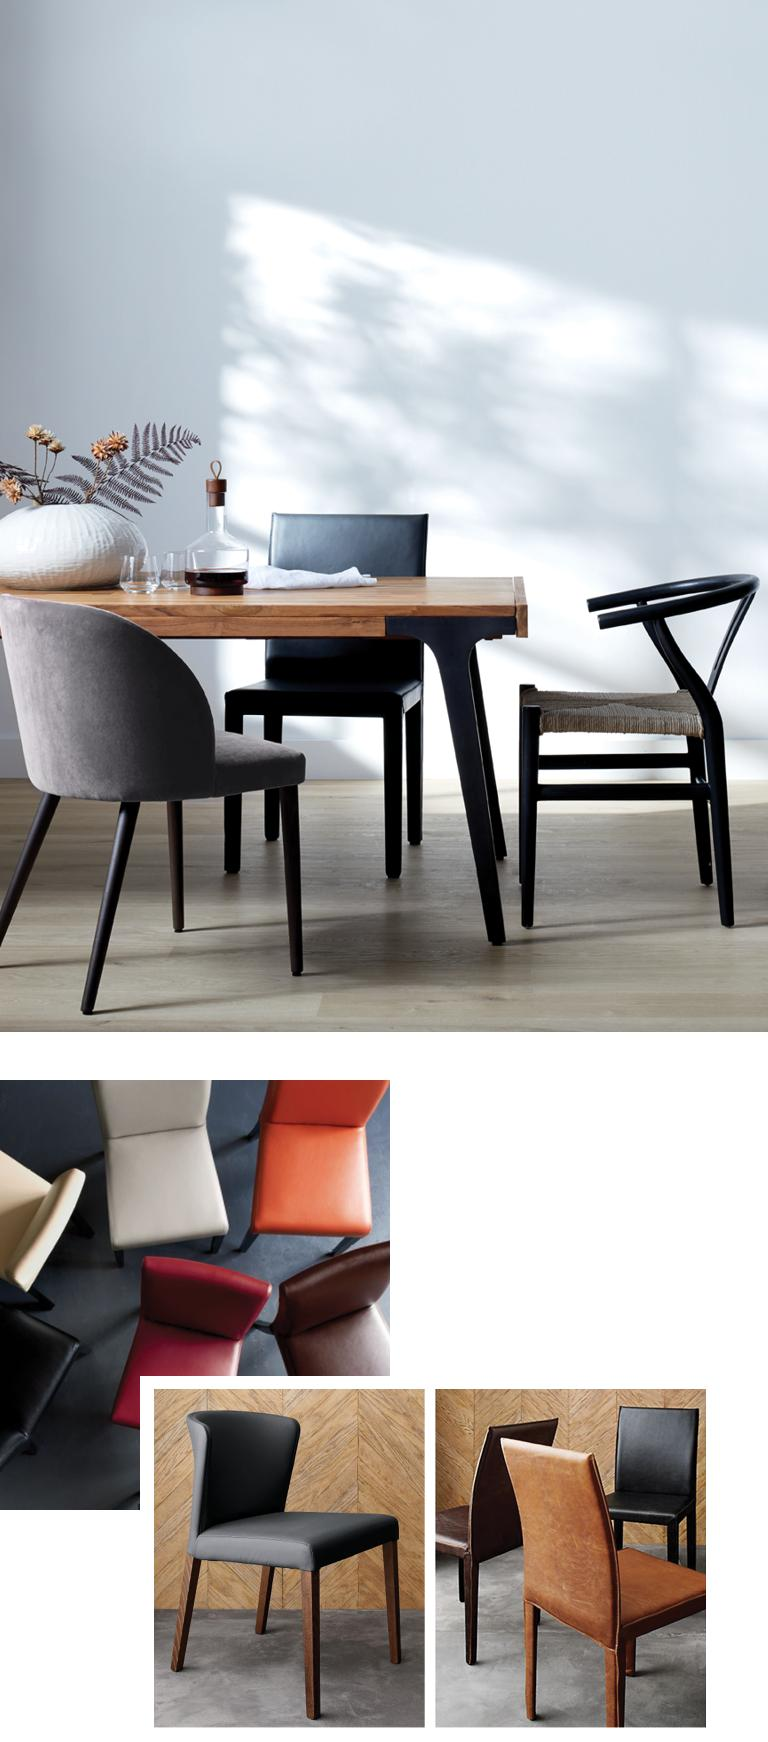 Home Furniture: Shop 100+ Styles for Every Room | Crate and ...